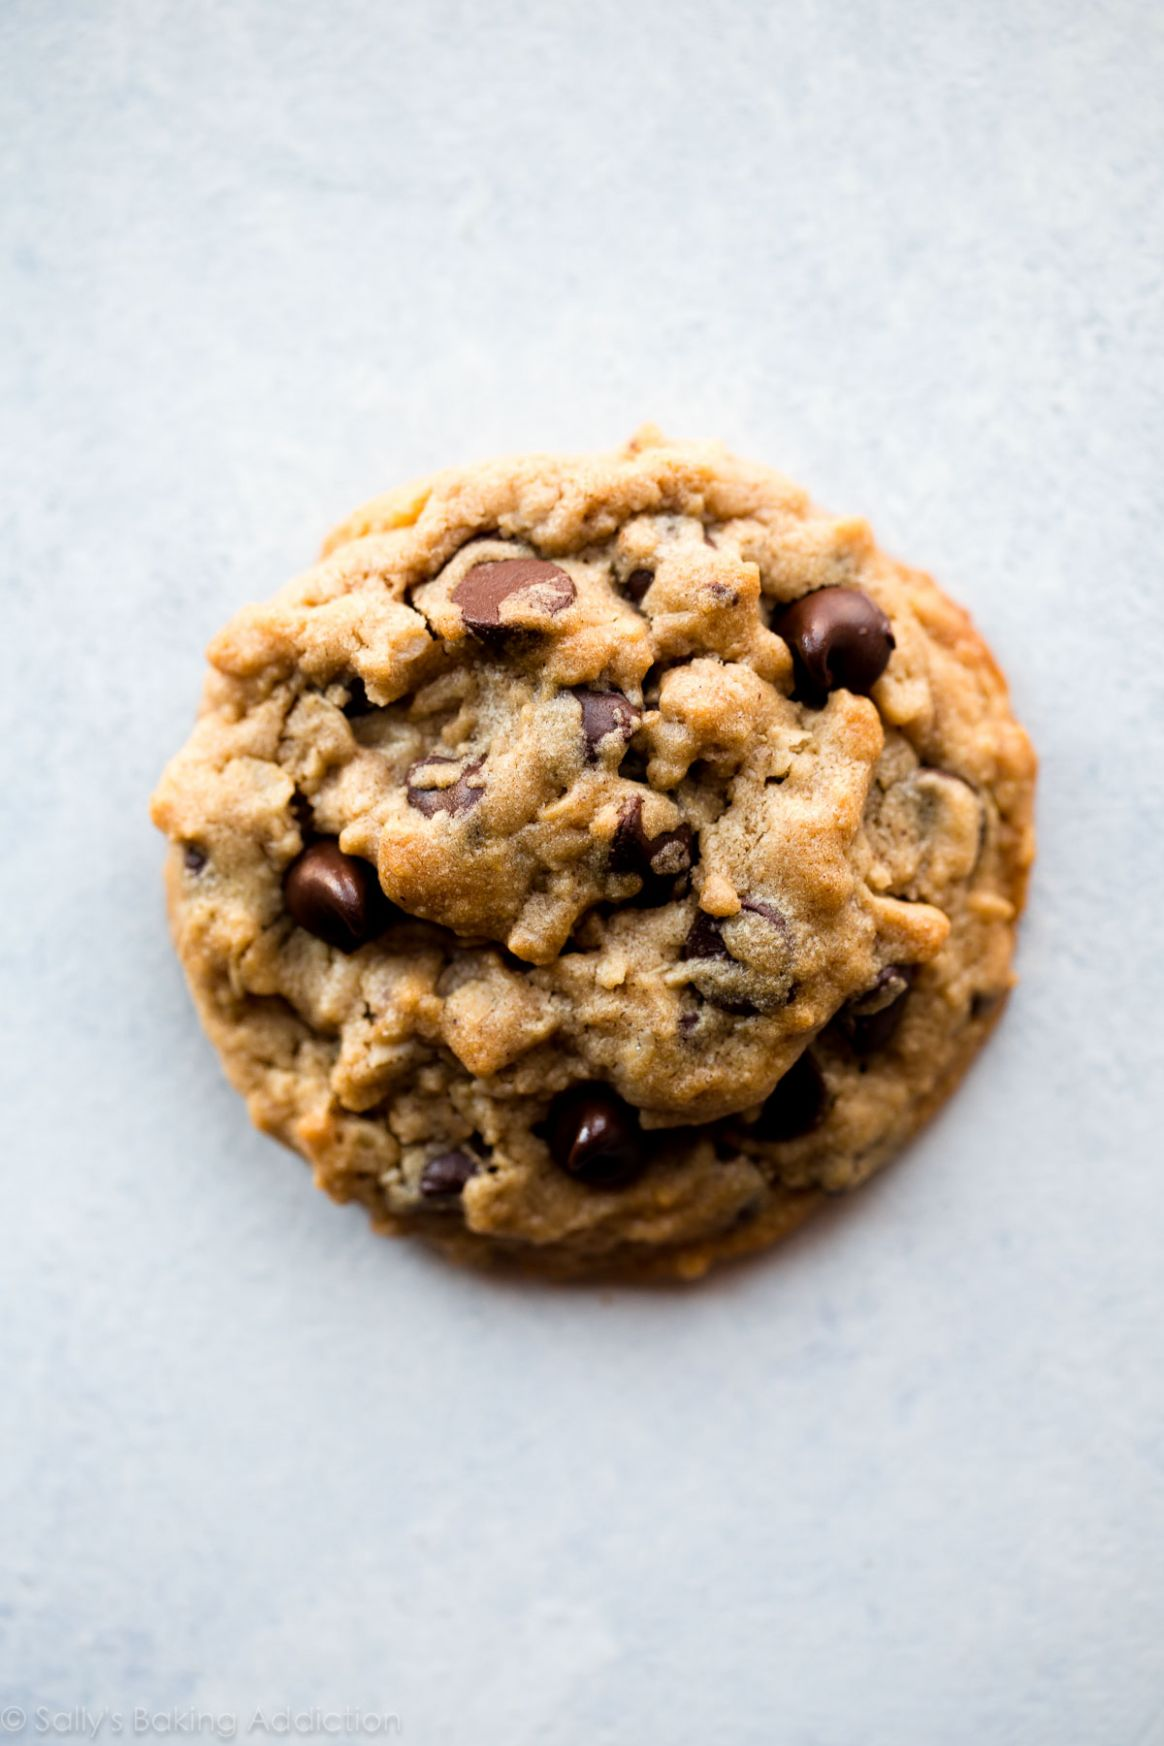 Big Fat Peanut Butter Oatmeal Chocolate Chip Cookies - Recipe Chocolate Oatmeal Cookies